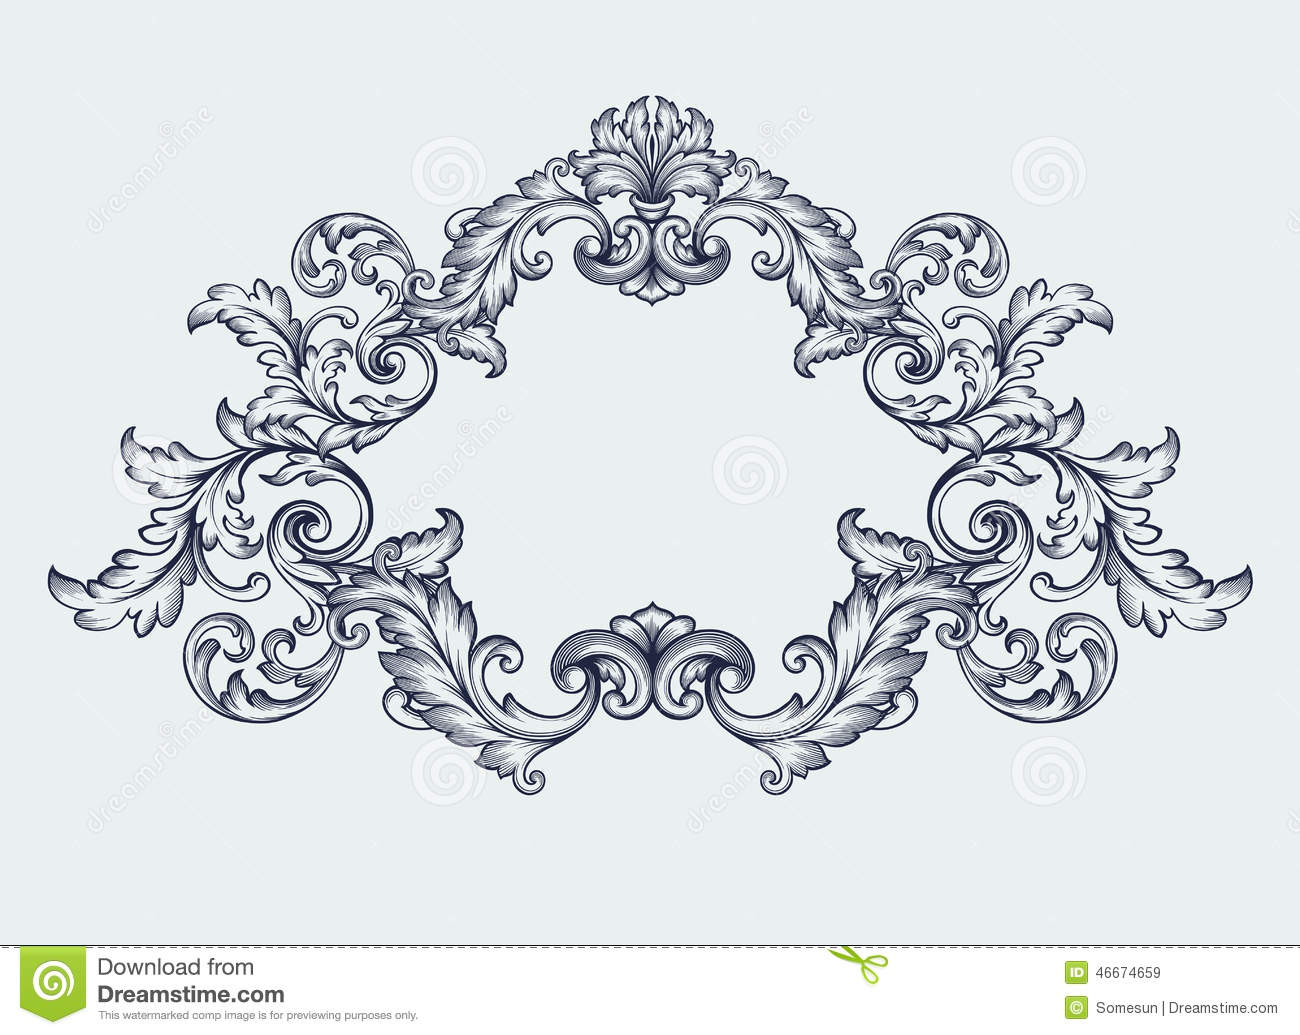 Classical clipart floral scroll #5